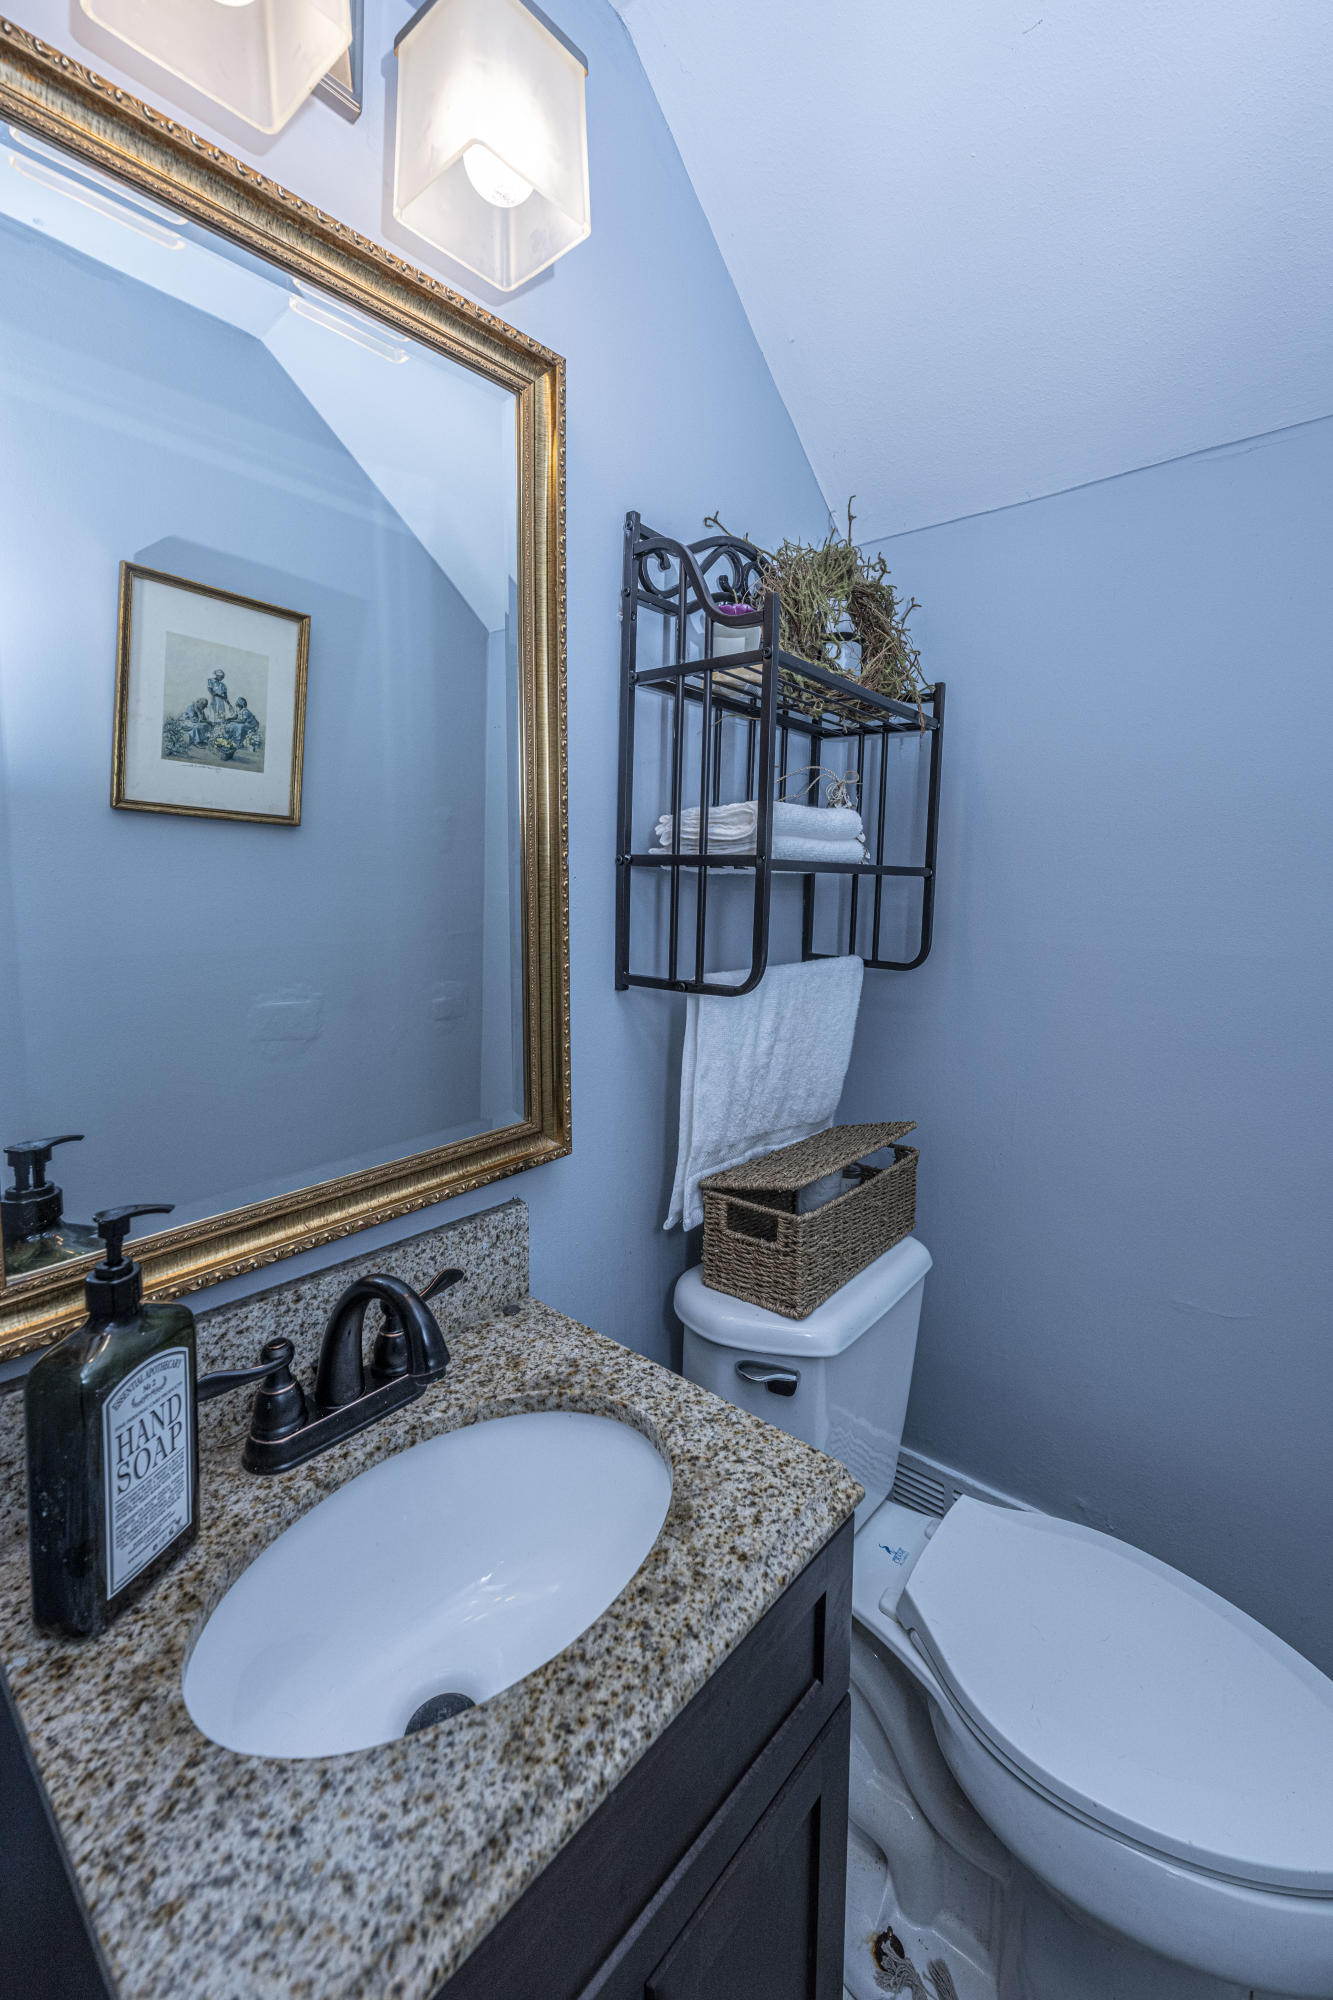 Stiles Point Homes For Sale - 775 Sparrow, Charleston, SC - 20